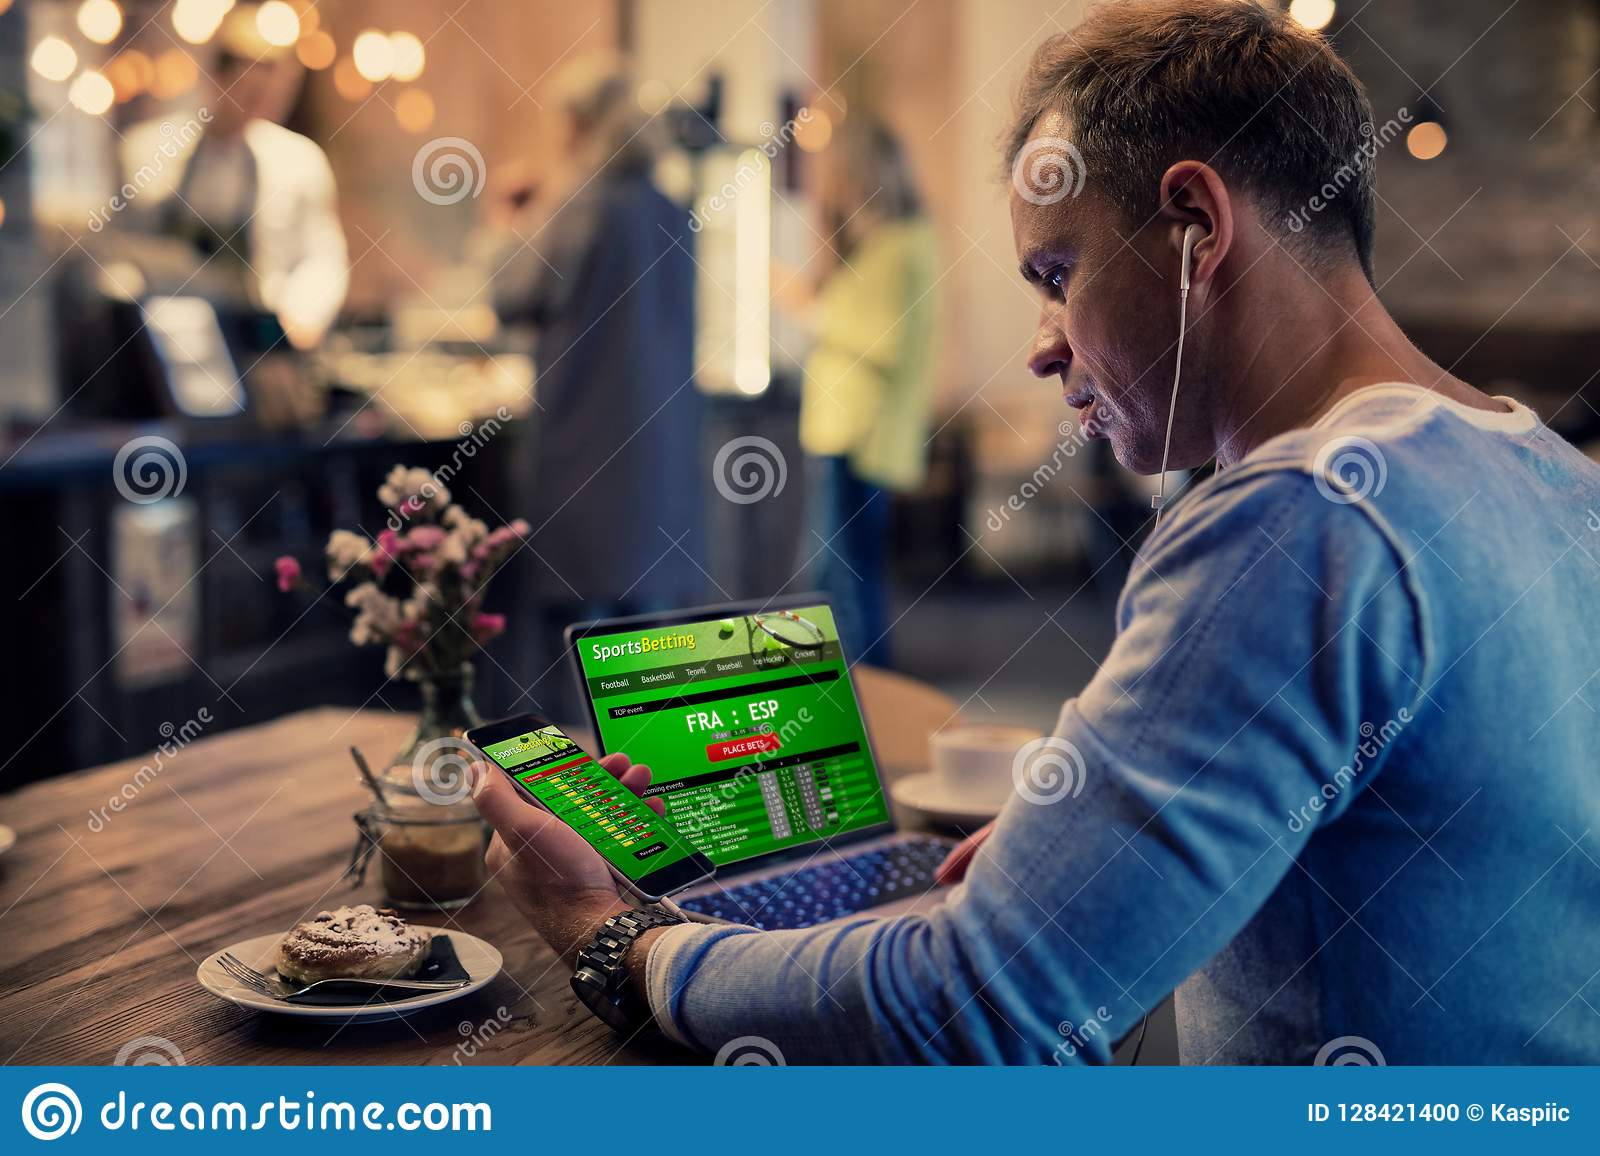 Online sports betting us customs service best way to make money betting on sports